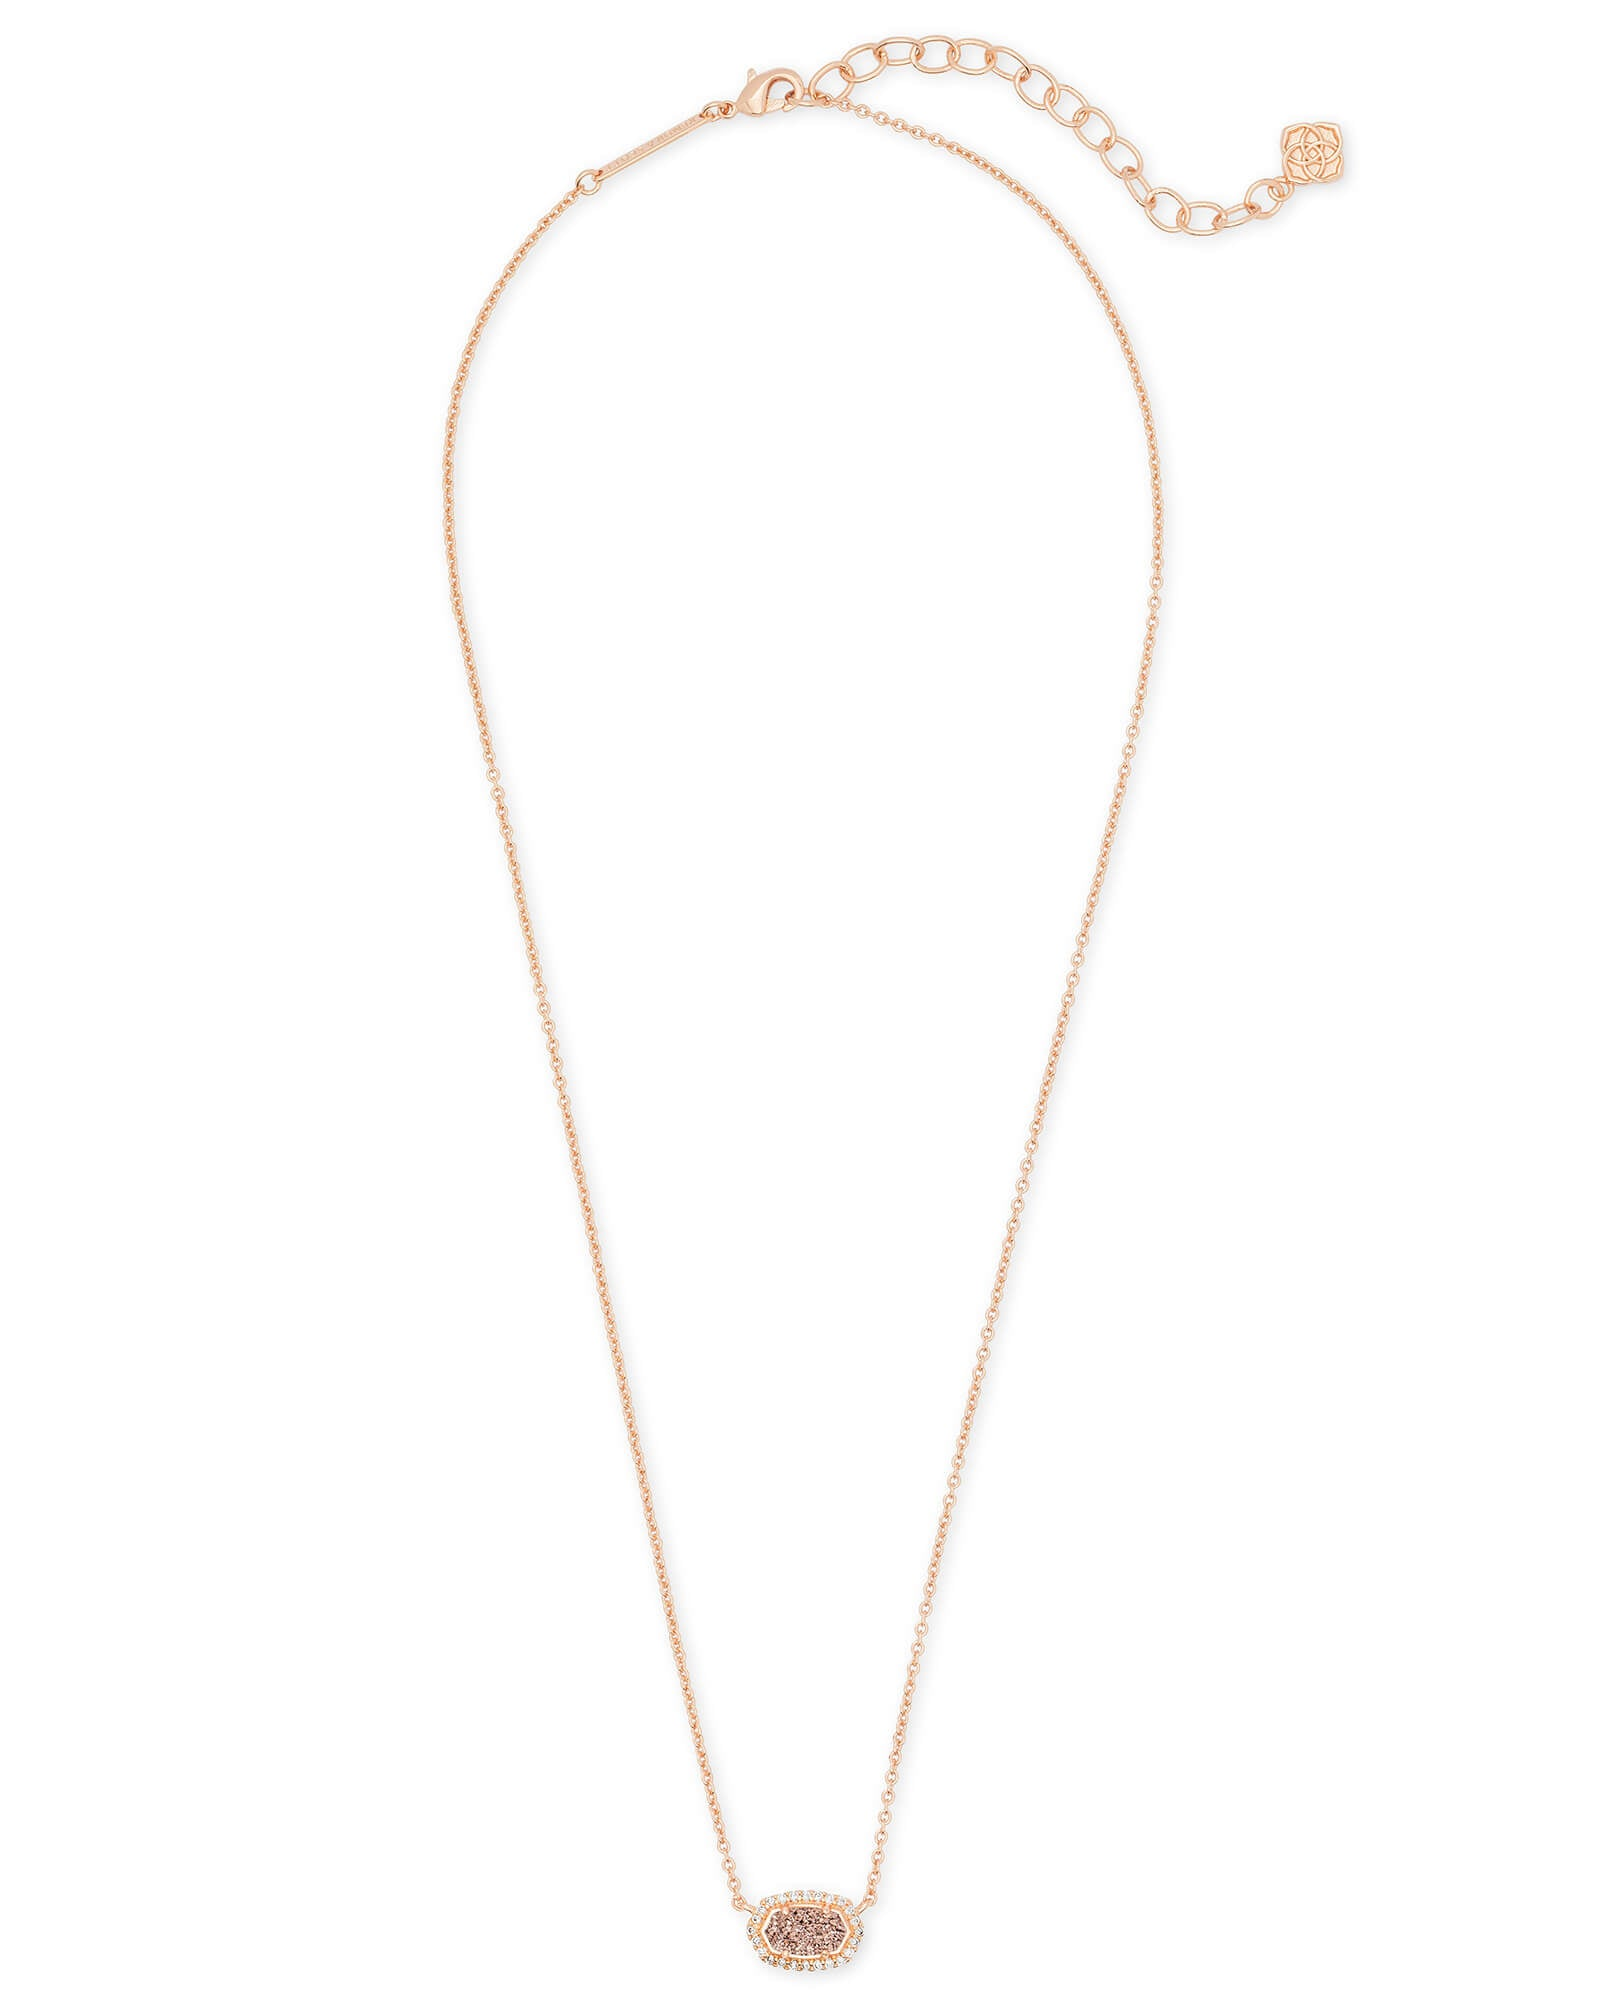 Chelsea Rose Gold Pendant Necklace in Rose Gold Drusy